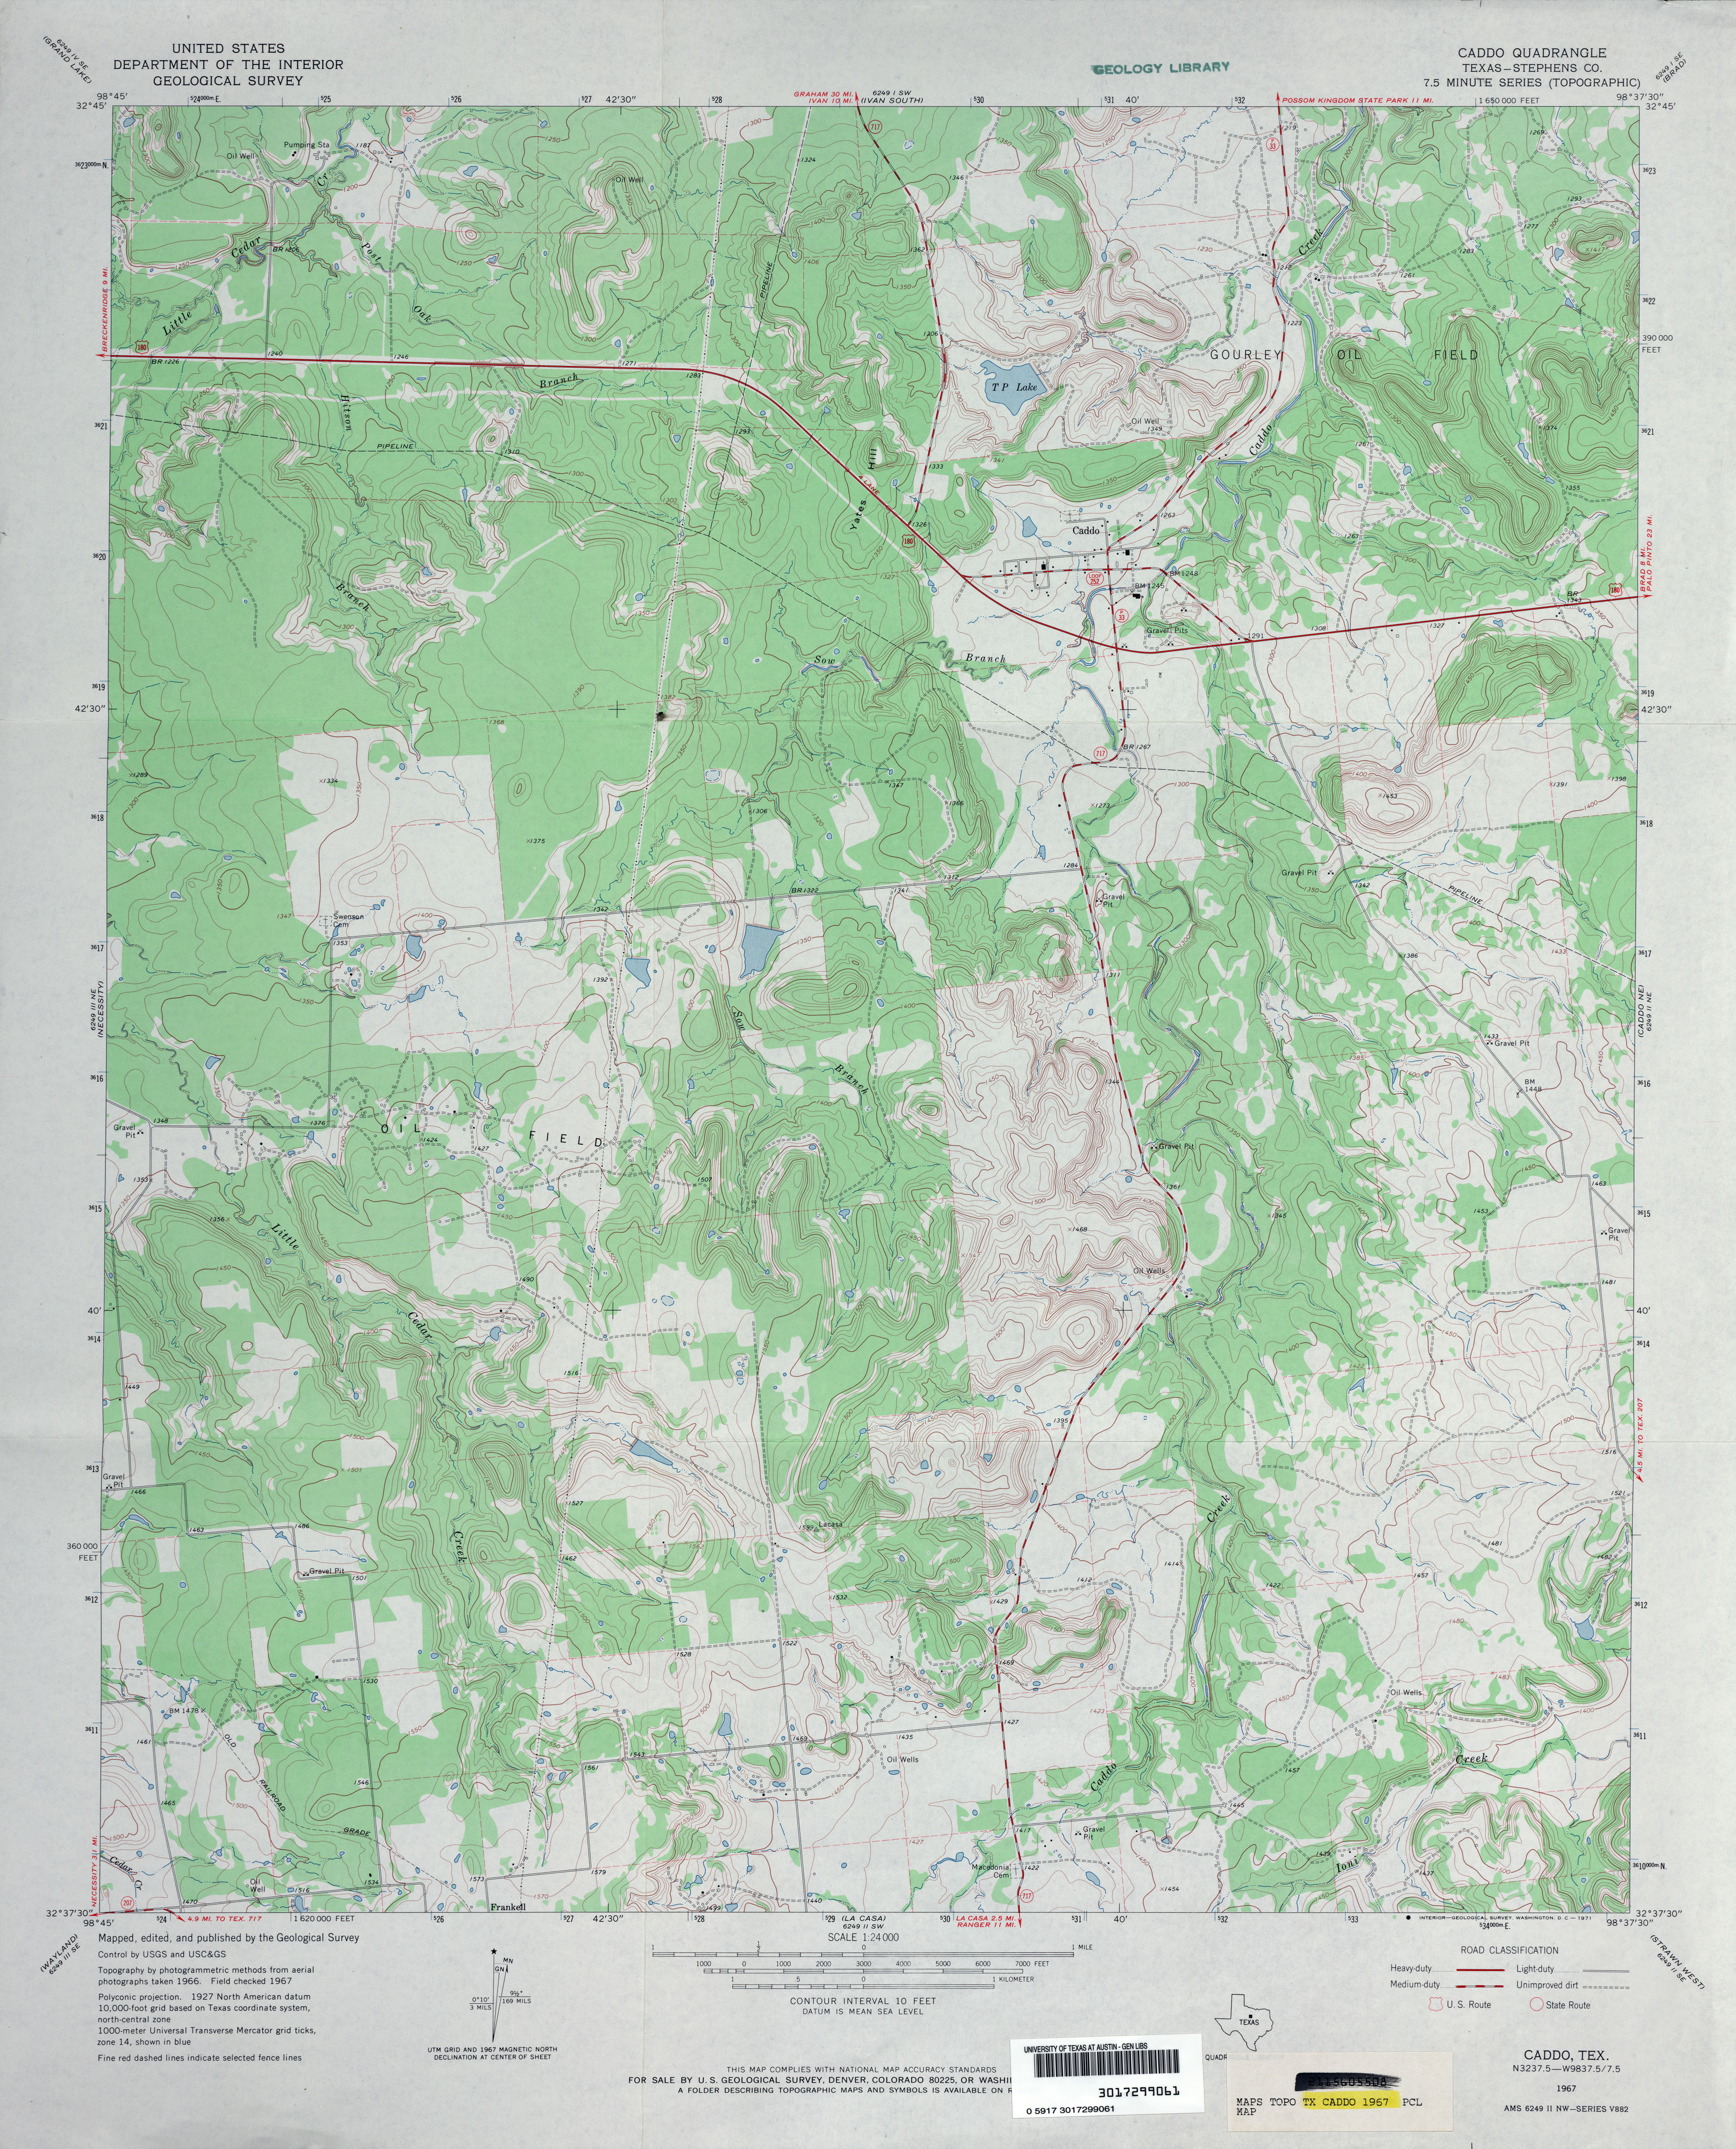 Texas Topographic Maps - Perry-Castañeda Map Collection - UT Liry on map of city of grand rapids, map of hamtramck, map of sparta township, map of plainfield township, map of cannon township, map of wesley college, map of rock hall, map of upper peninsula of michigan, map of delmar, map of delaware technical community college,